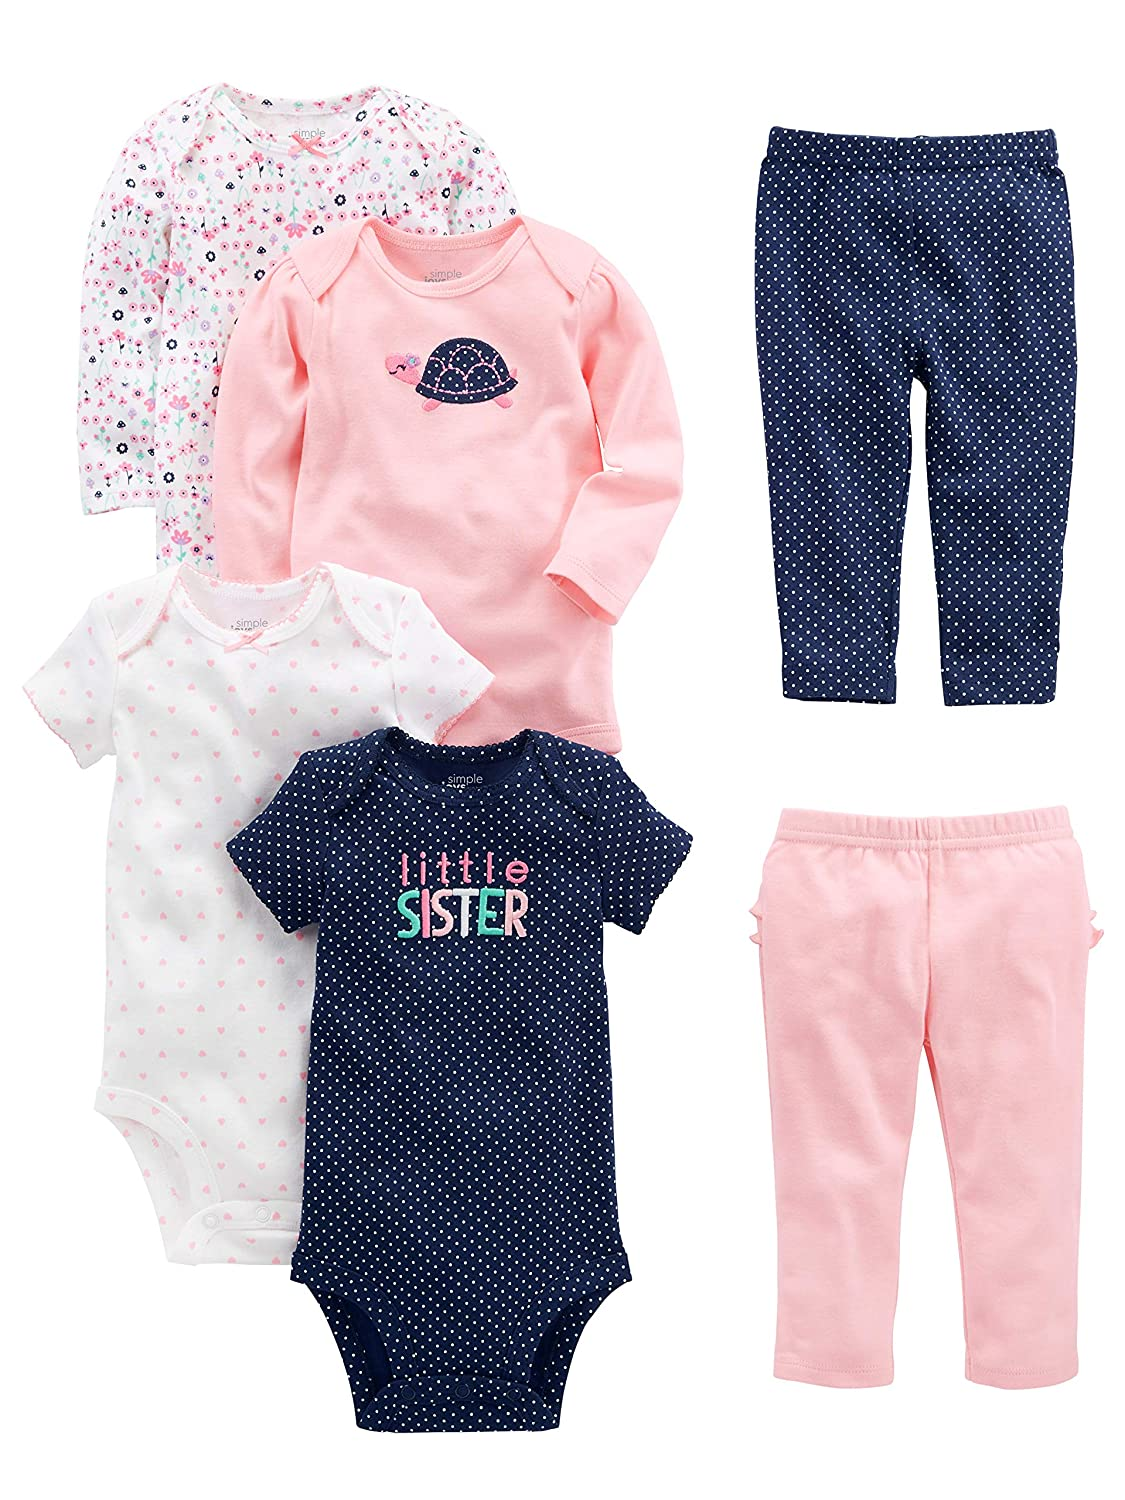 9e9236c4a Amazon.com: Simple Joys by Carter's Baby Girls' 6-Piece Bodysuits (Short  and Long Sleeve) and Pants Set: Clothing